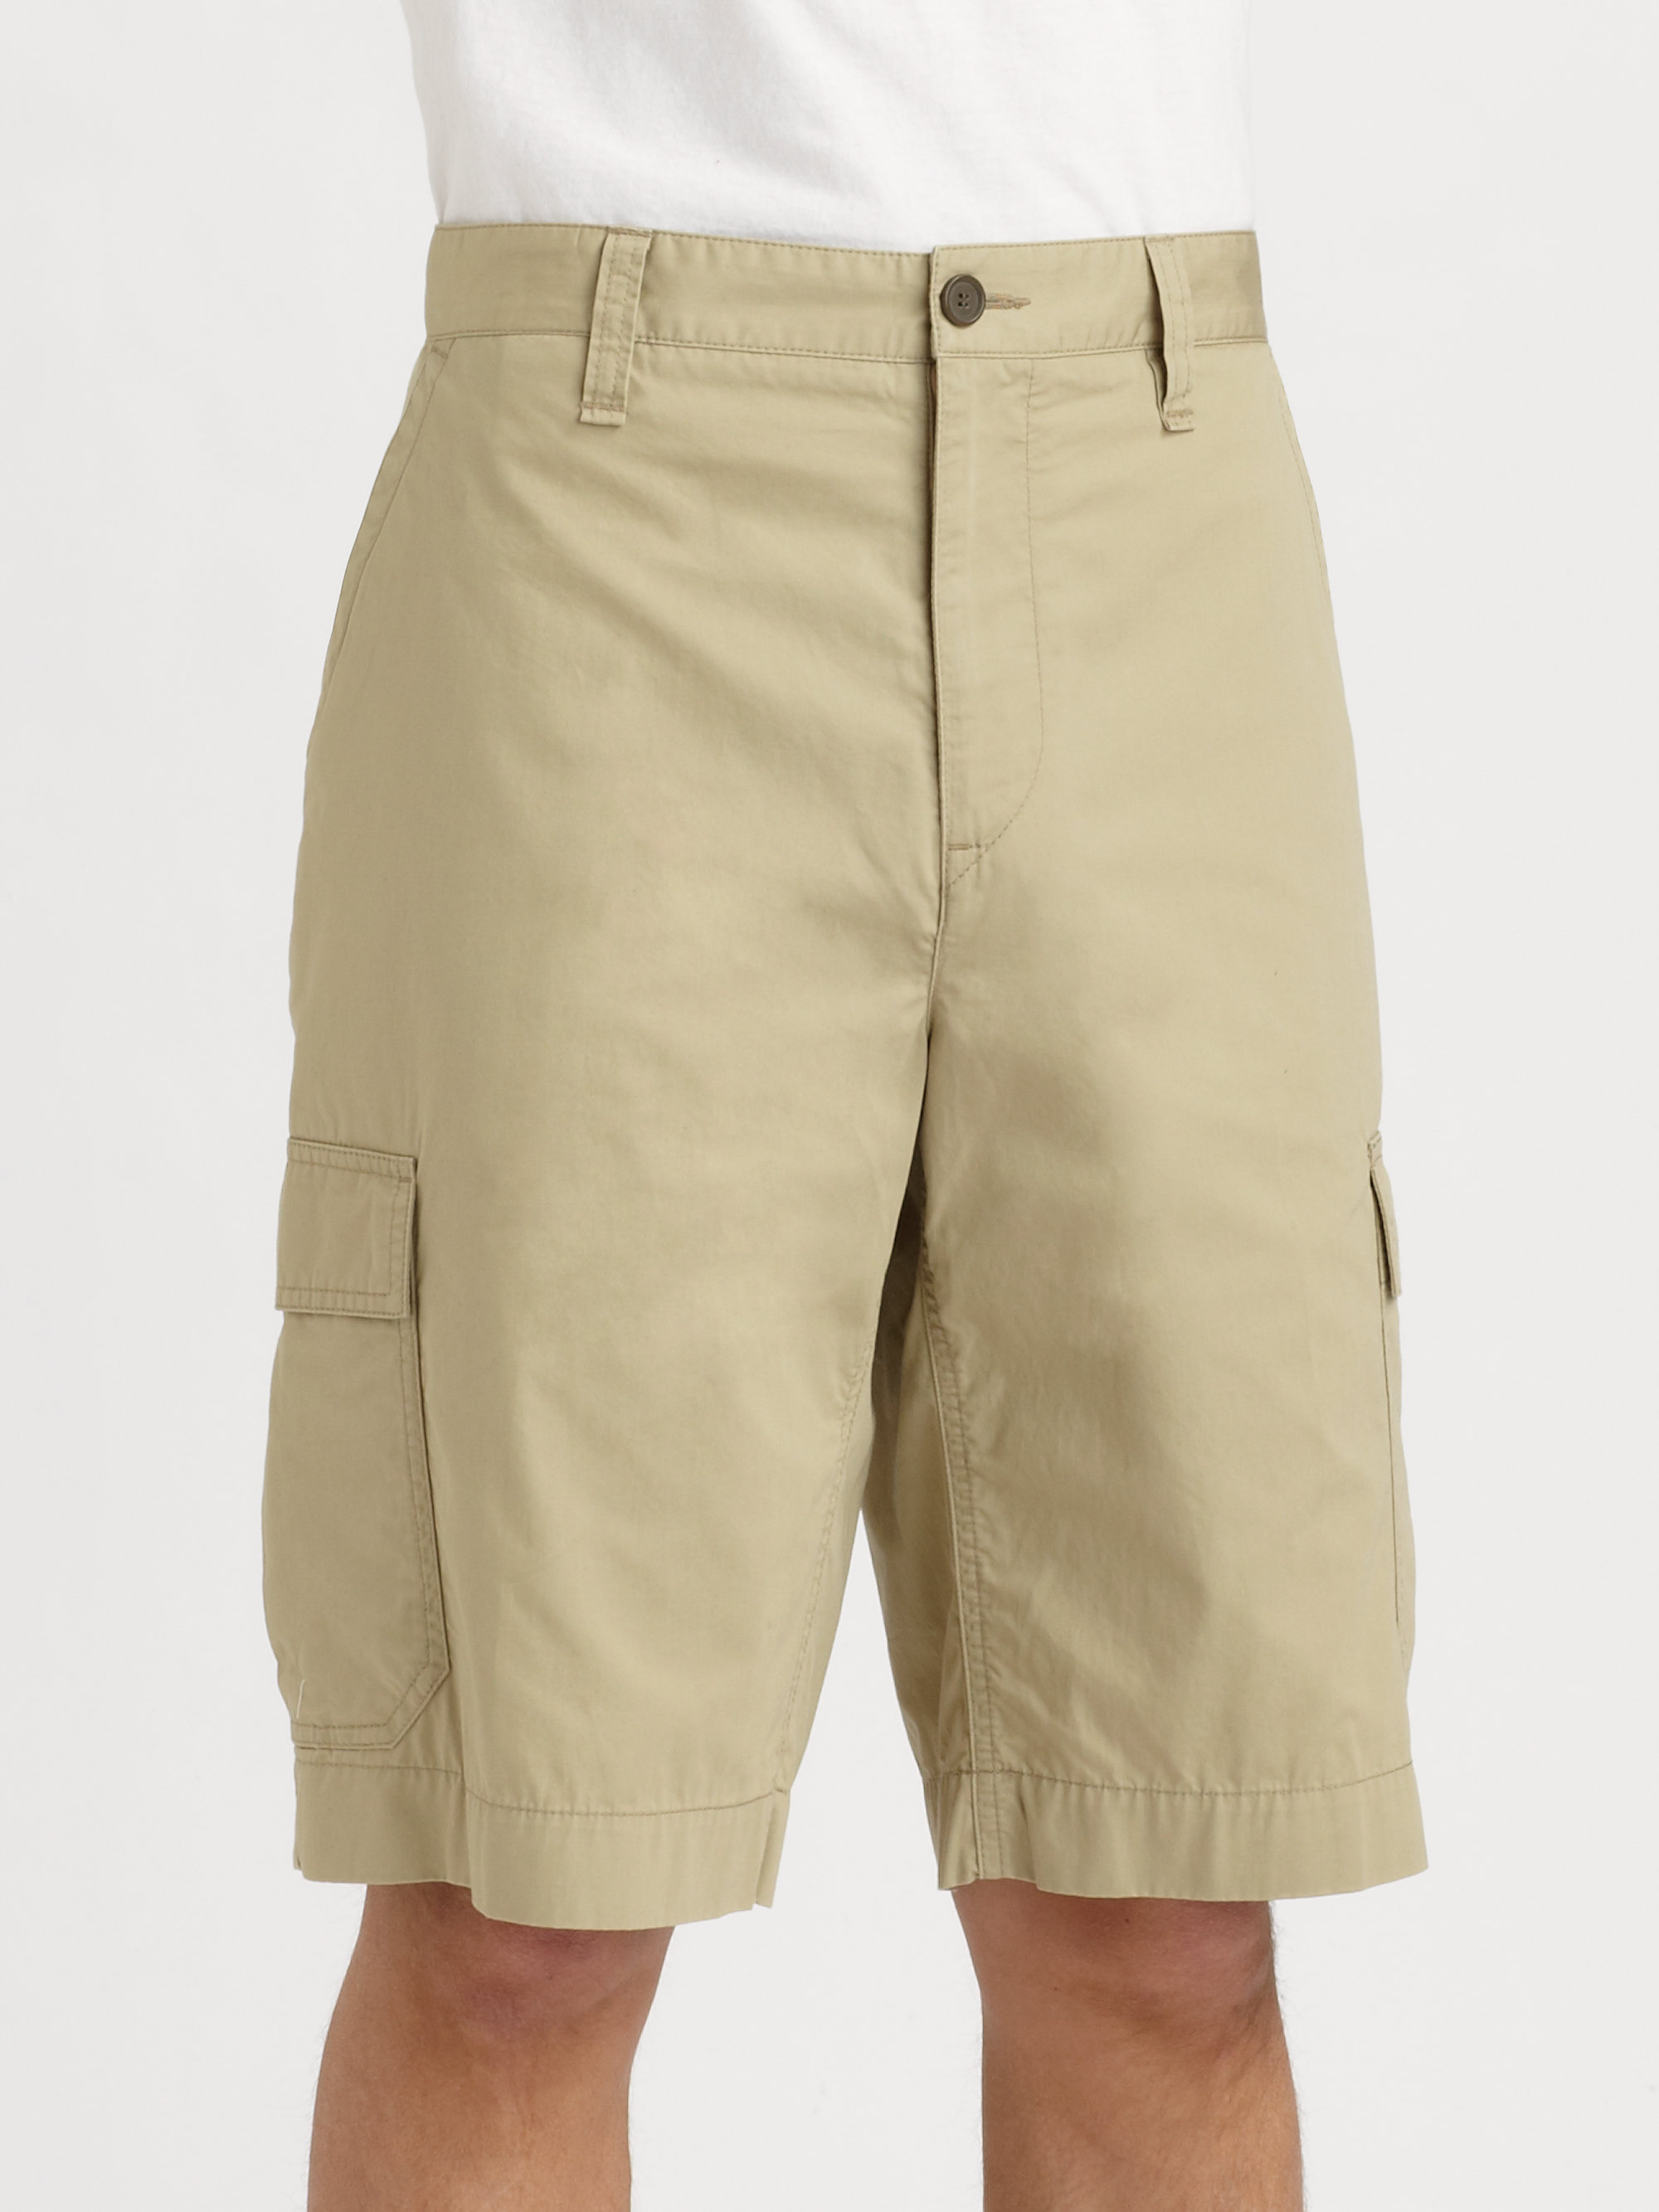 Natural For Cargo Men Lacoste Shorts nwPkO0